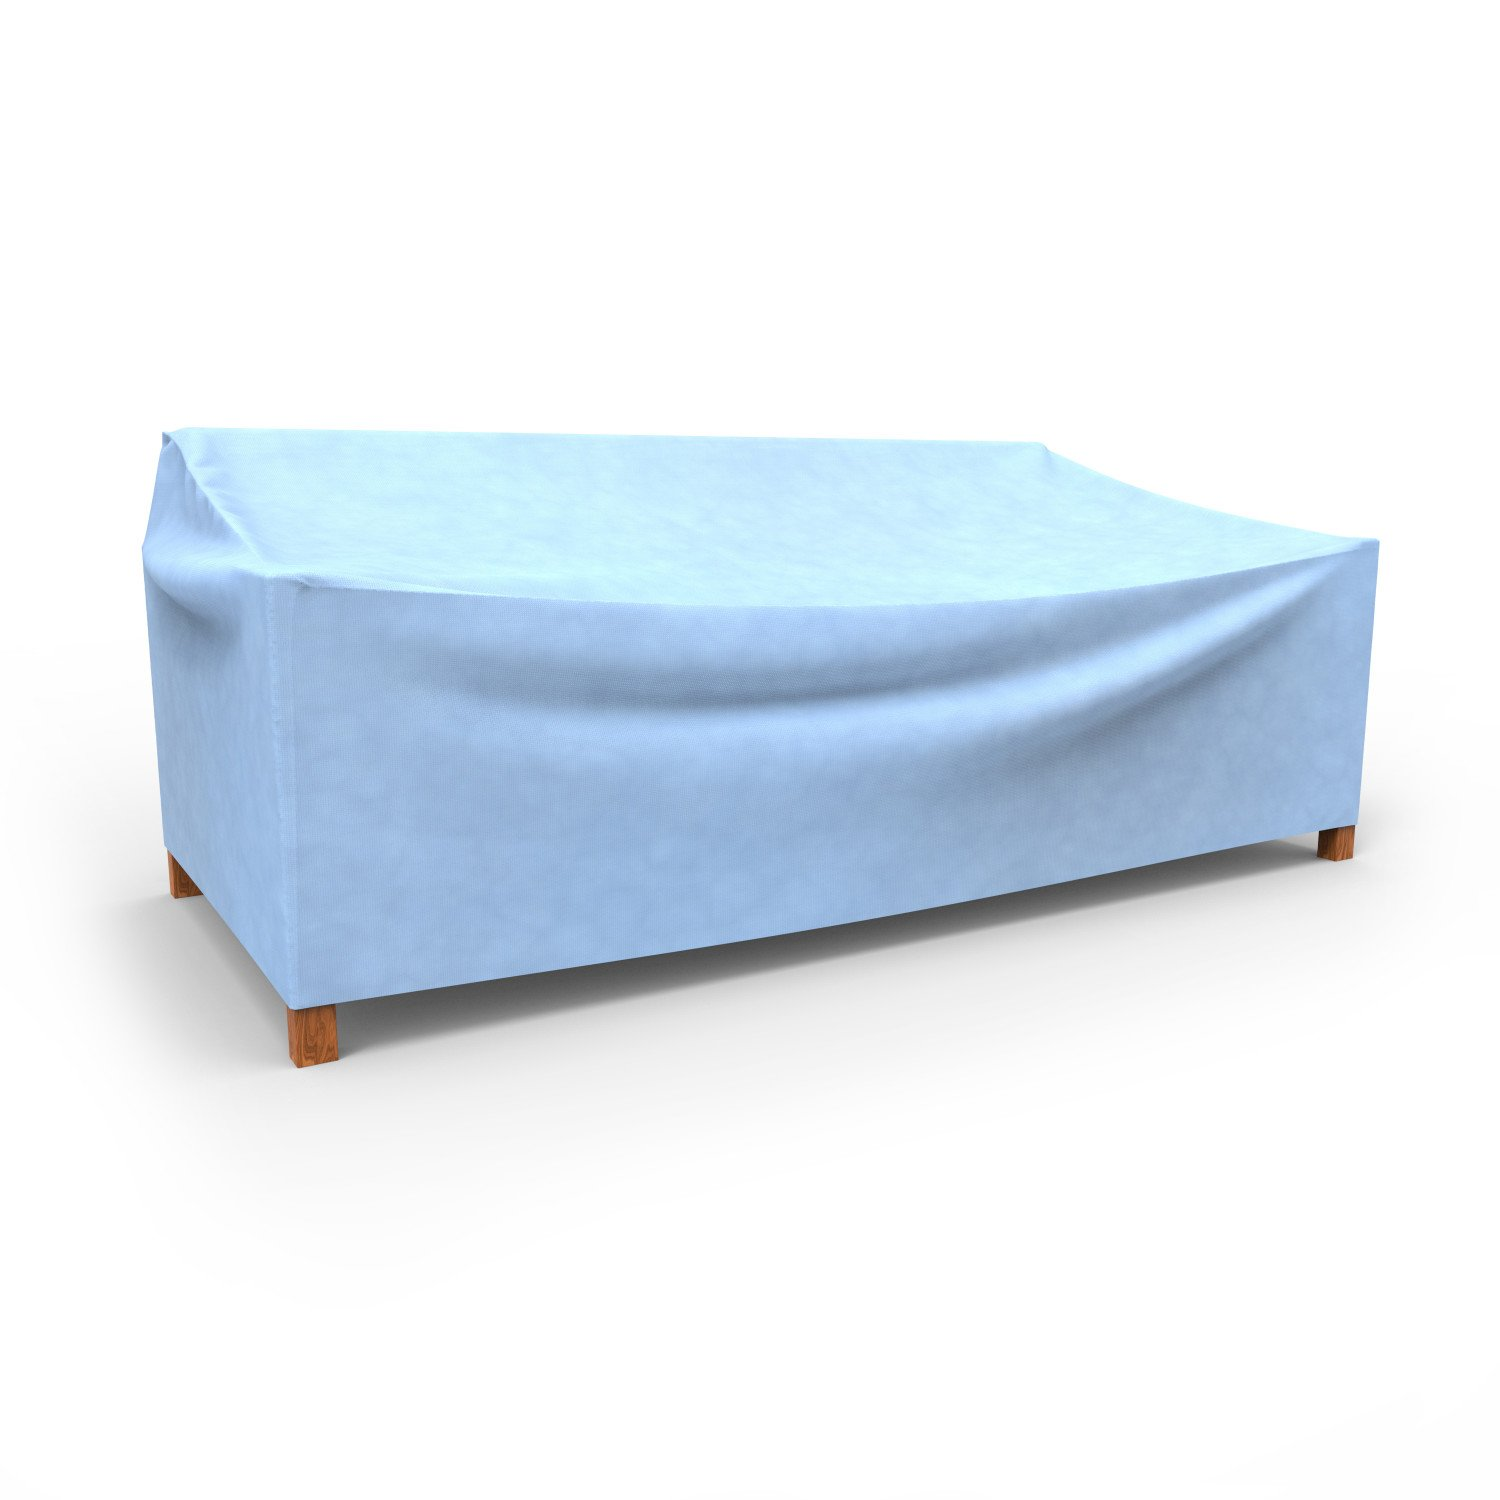 Budge All-Seasons Outdoor Patio Loveseat Cover, Extra Large (Blue)